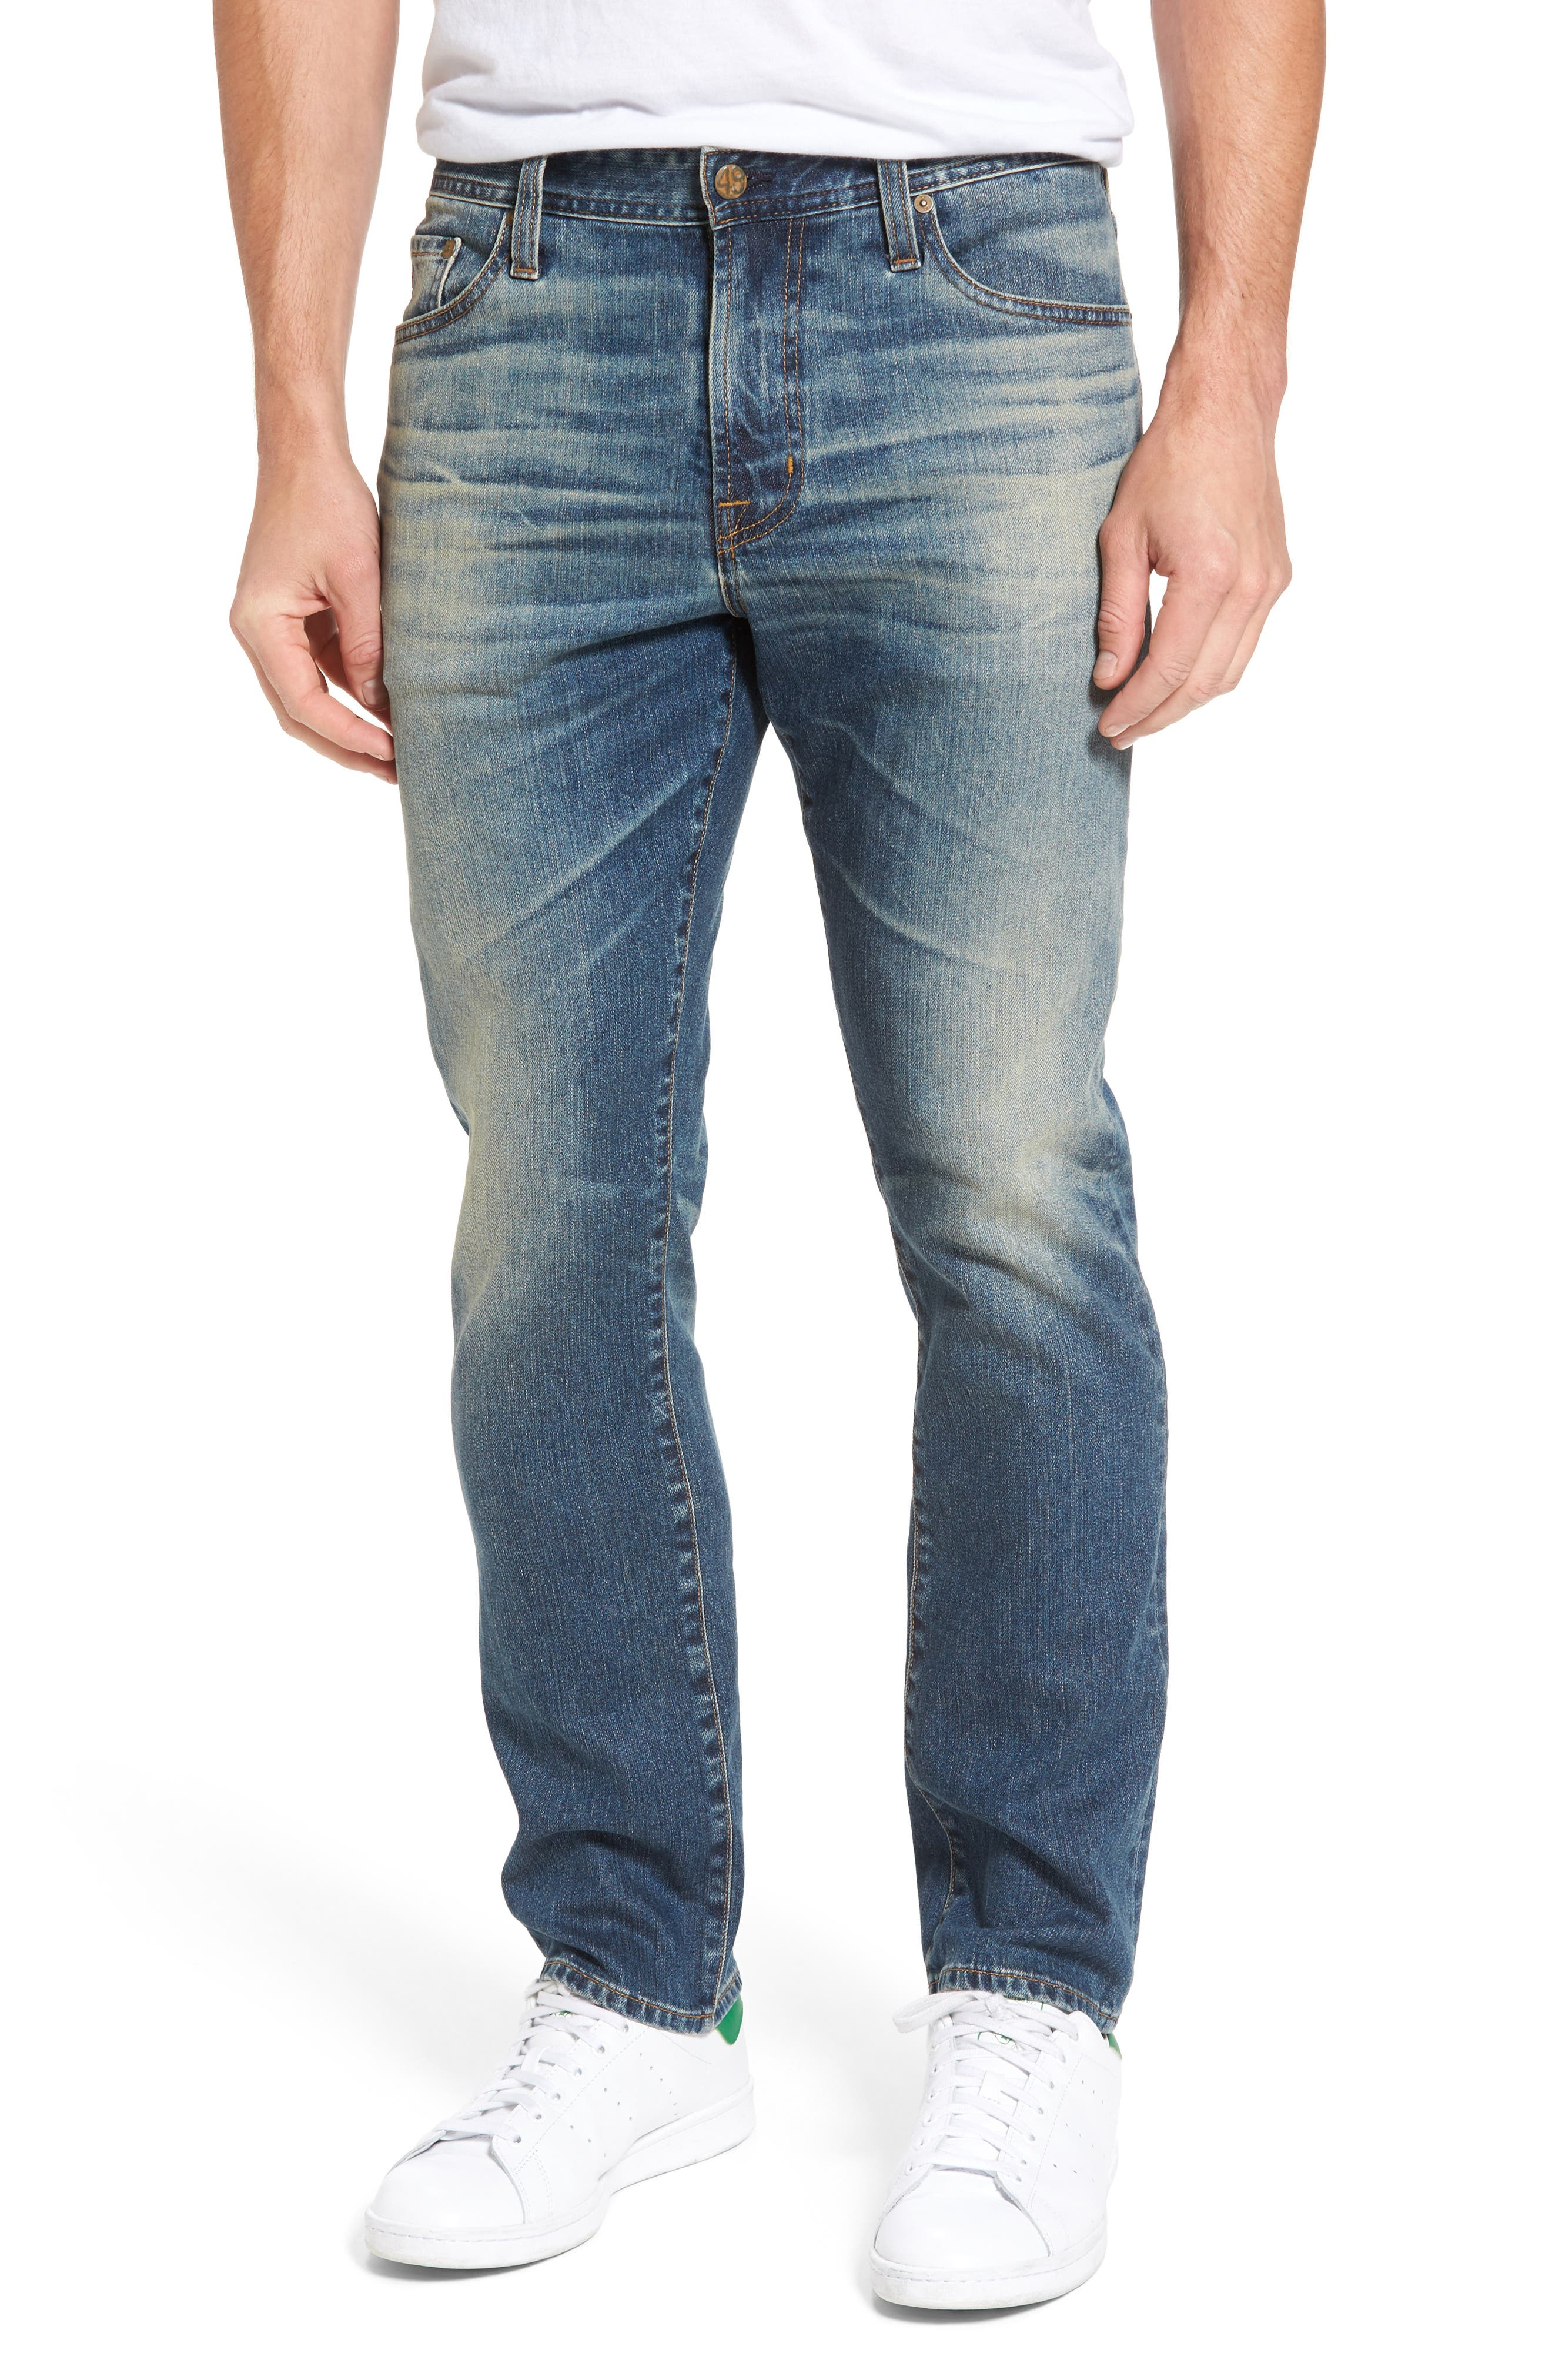 Everett Slim Straight Fit Jeans,                         Main,                         color, 18 Years Cashout